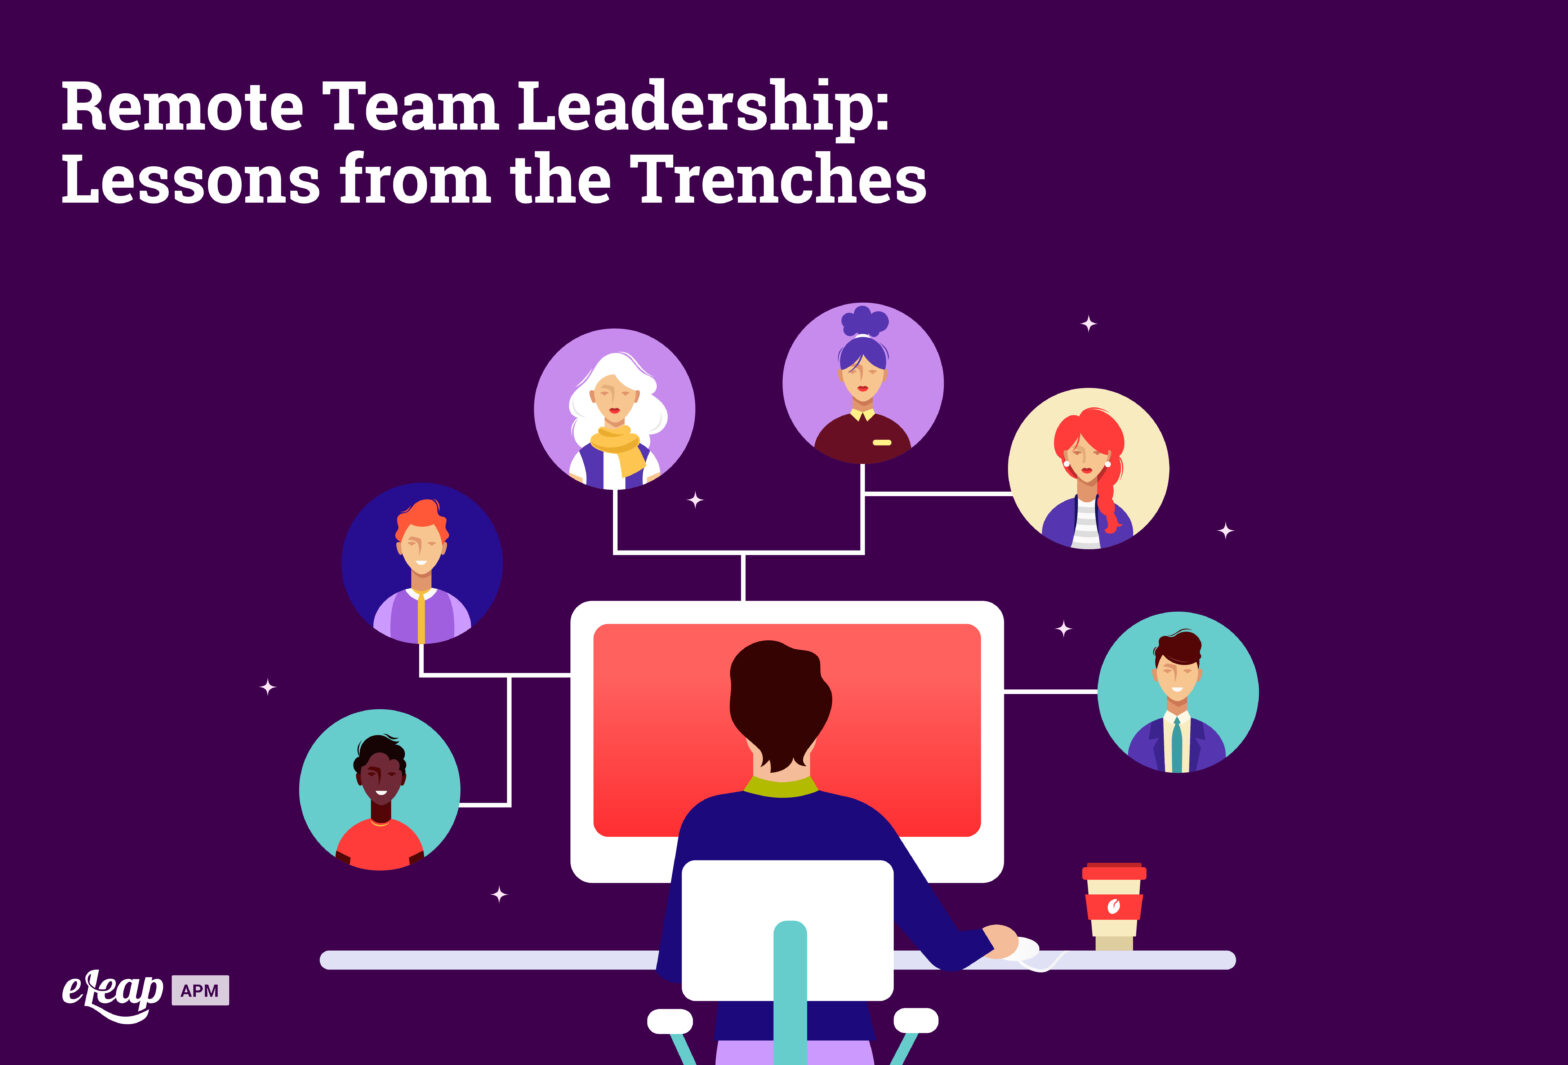 Remote Team Leadership: Lessons from the Trenches